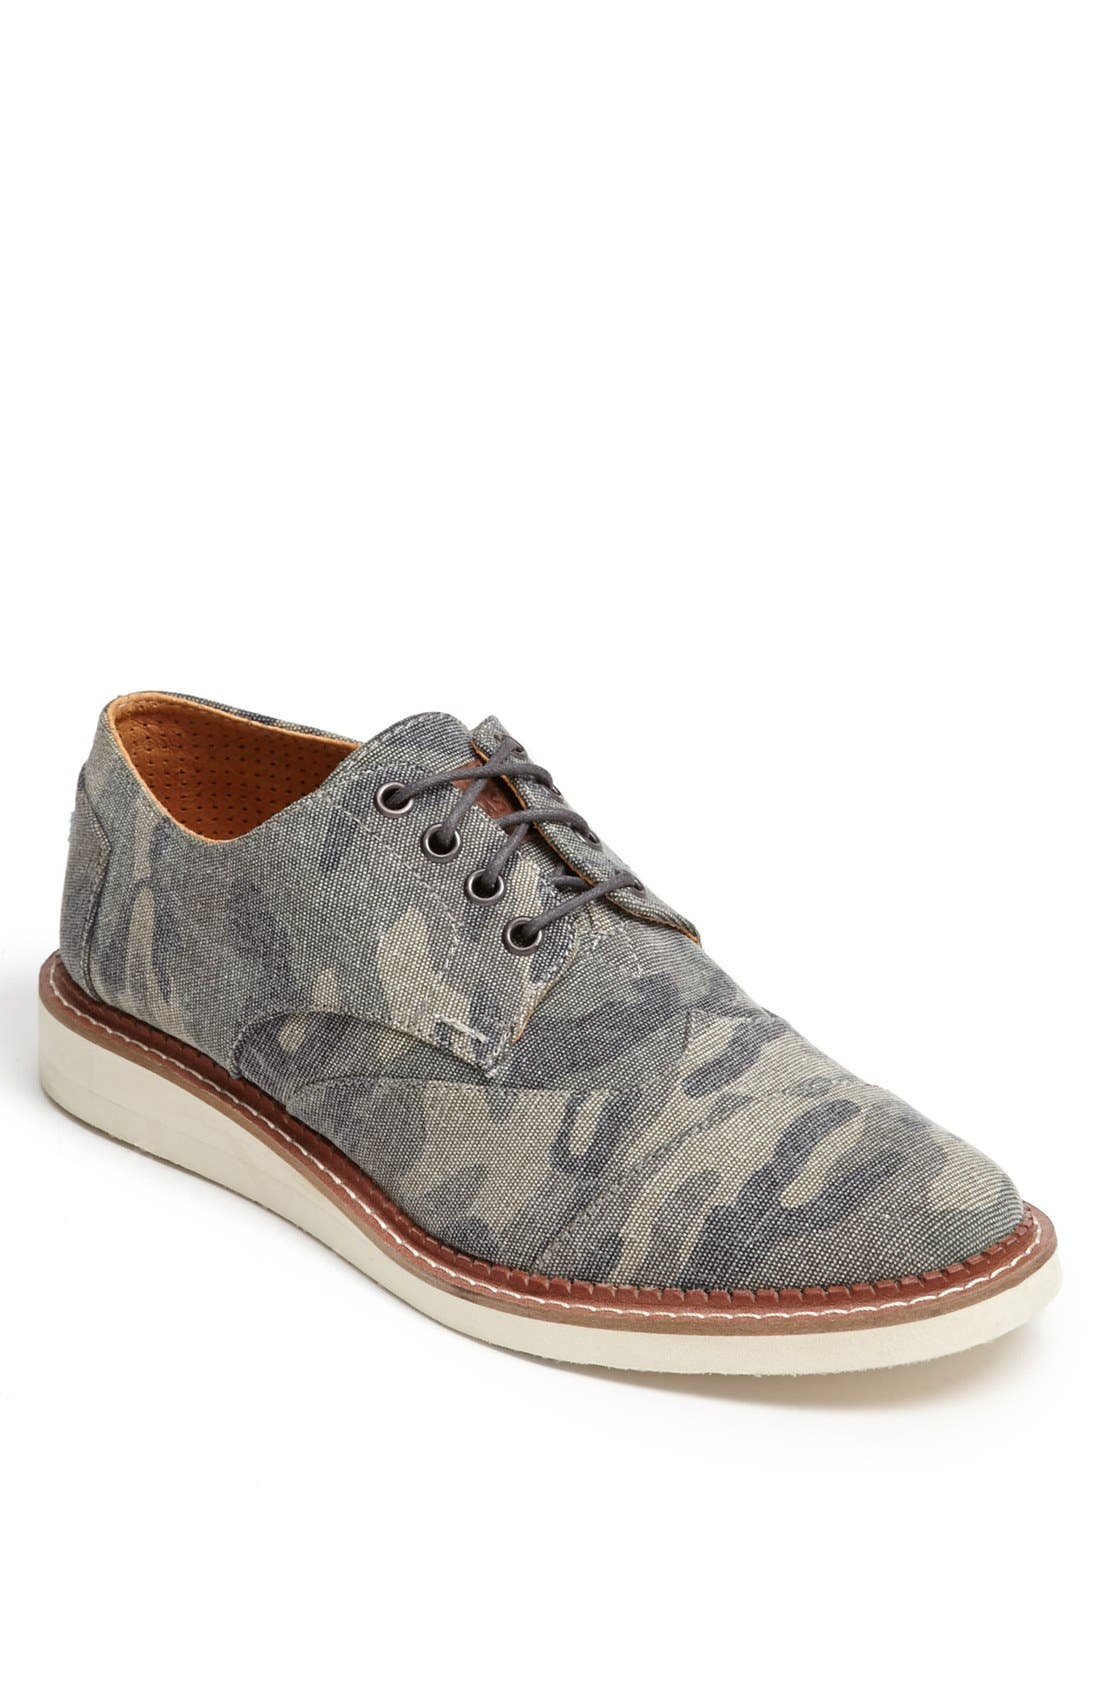 Main Image - TOMS 'Brogue' Wingtip (Men)